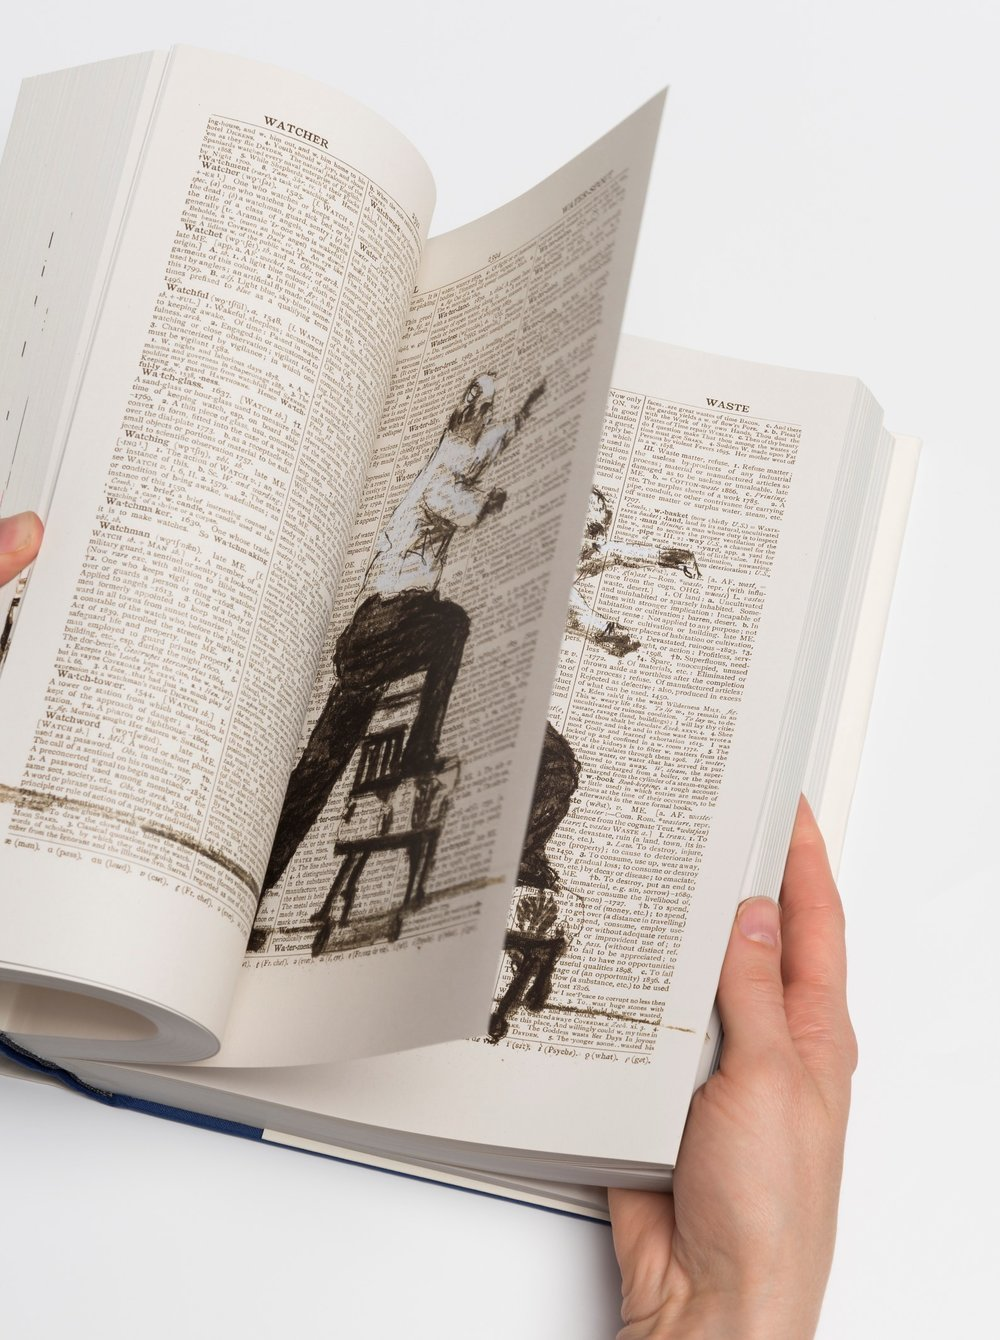 Photo: 2nd hand reading William Kentridge